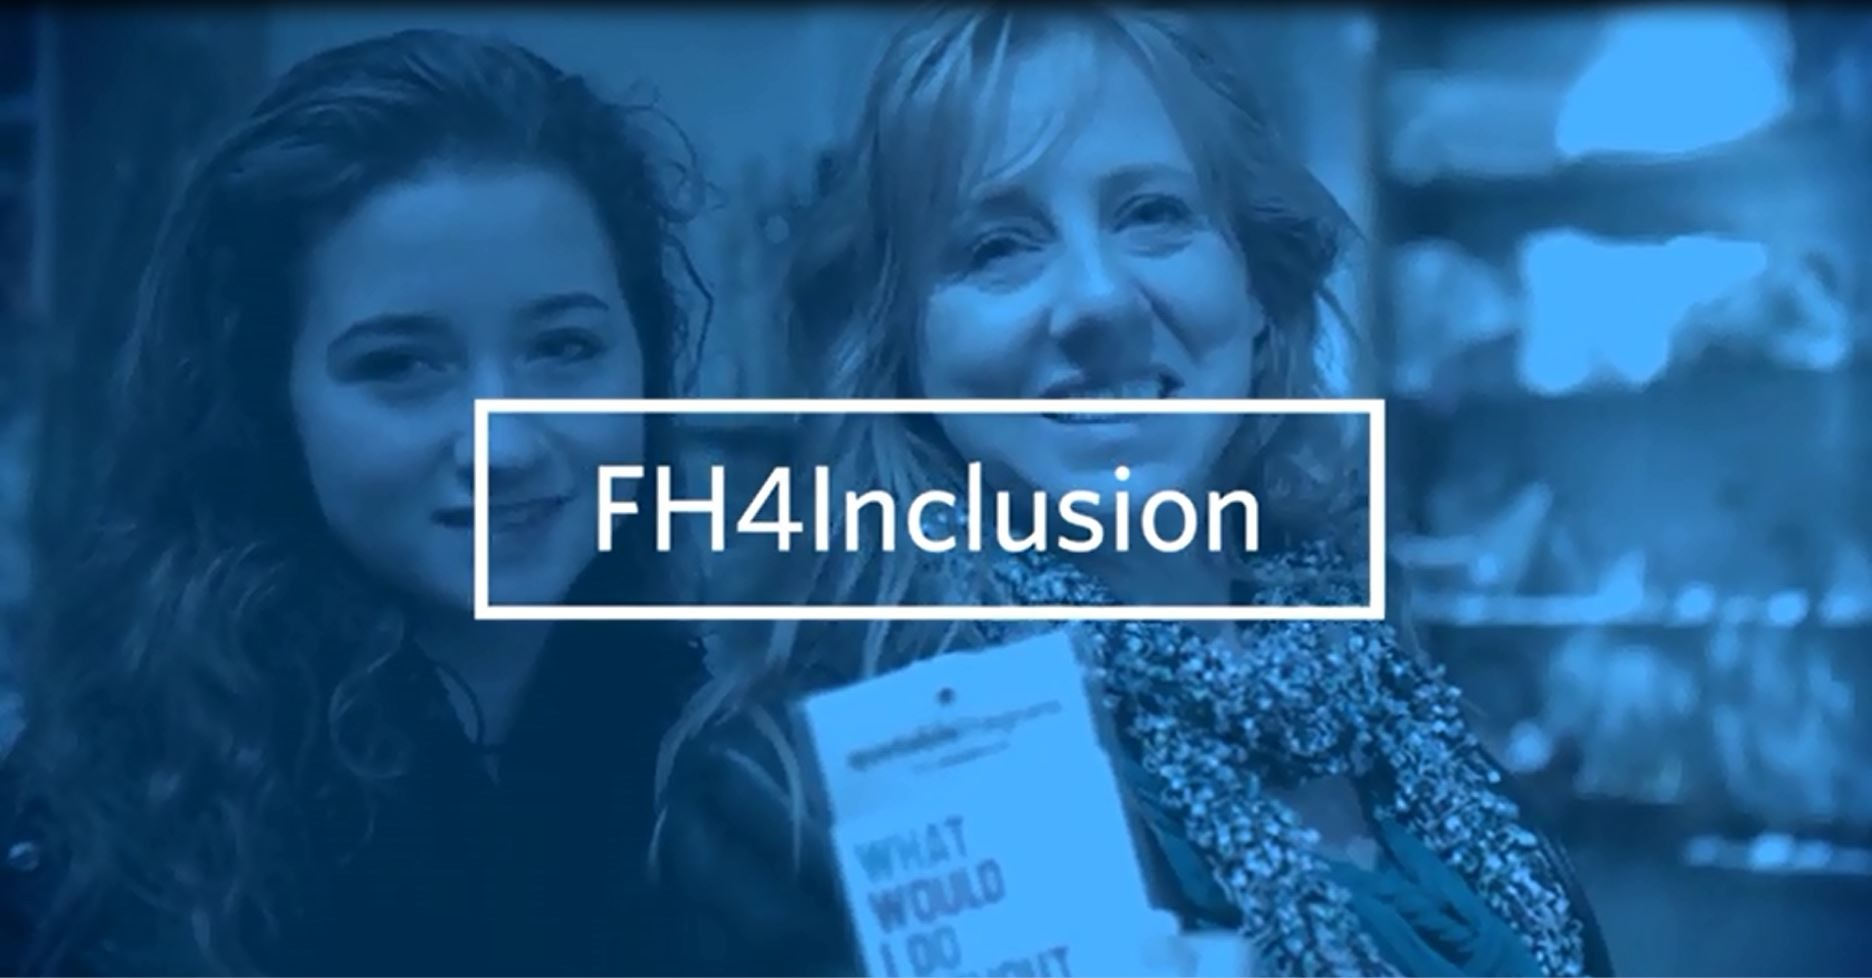 FleishmanHillard President and CEO John Saunders recaps the company's 70th anniversary FH4Inclusion program